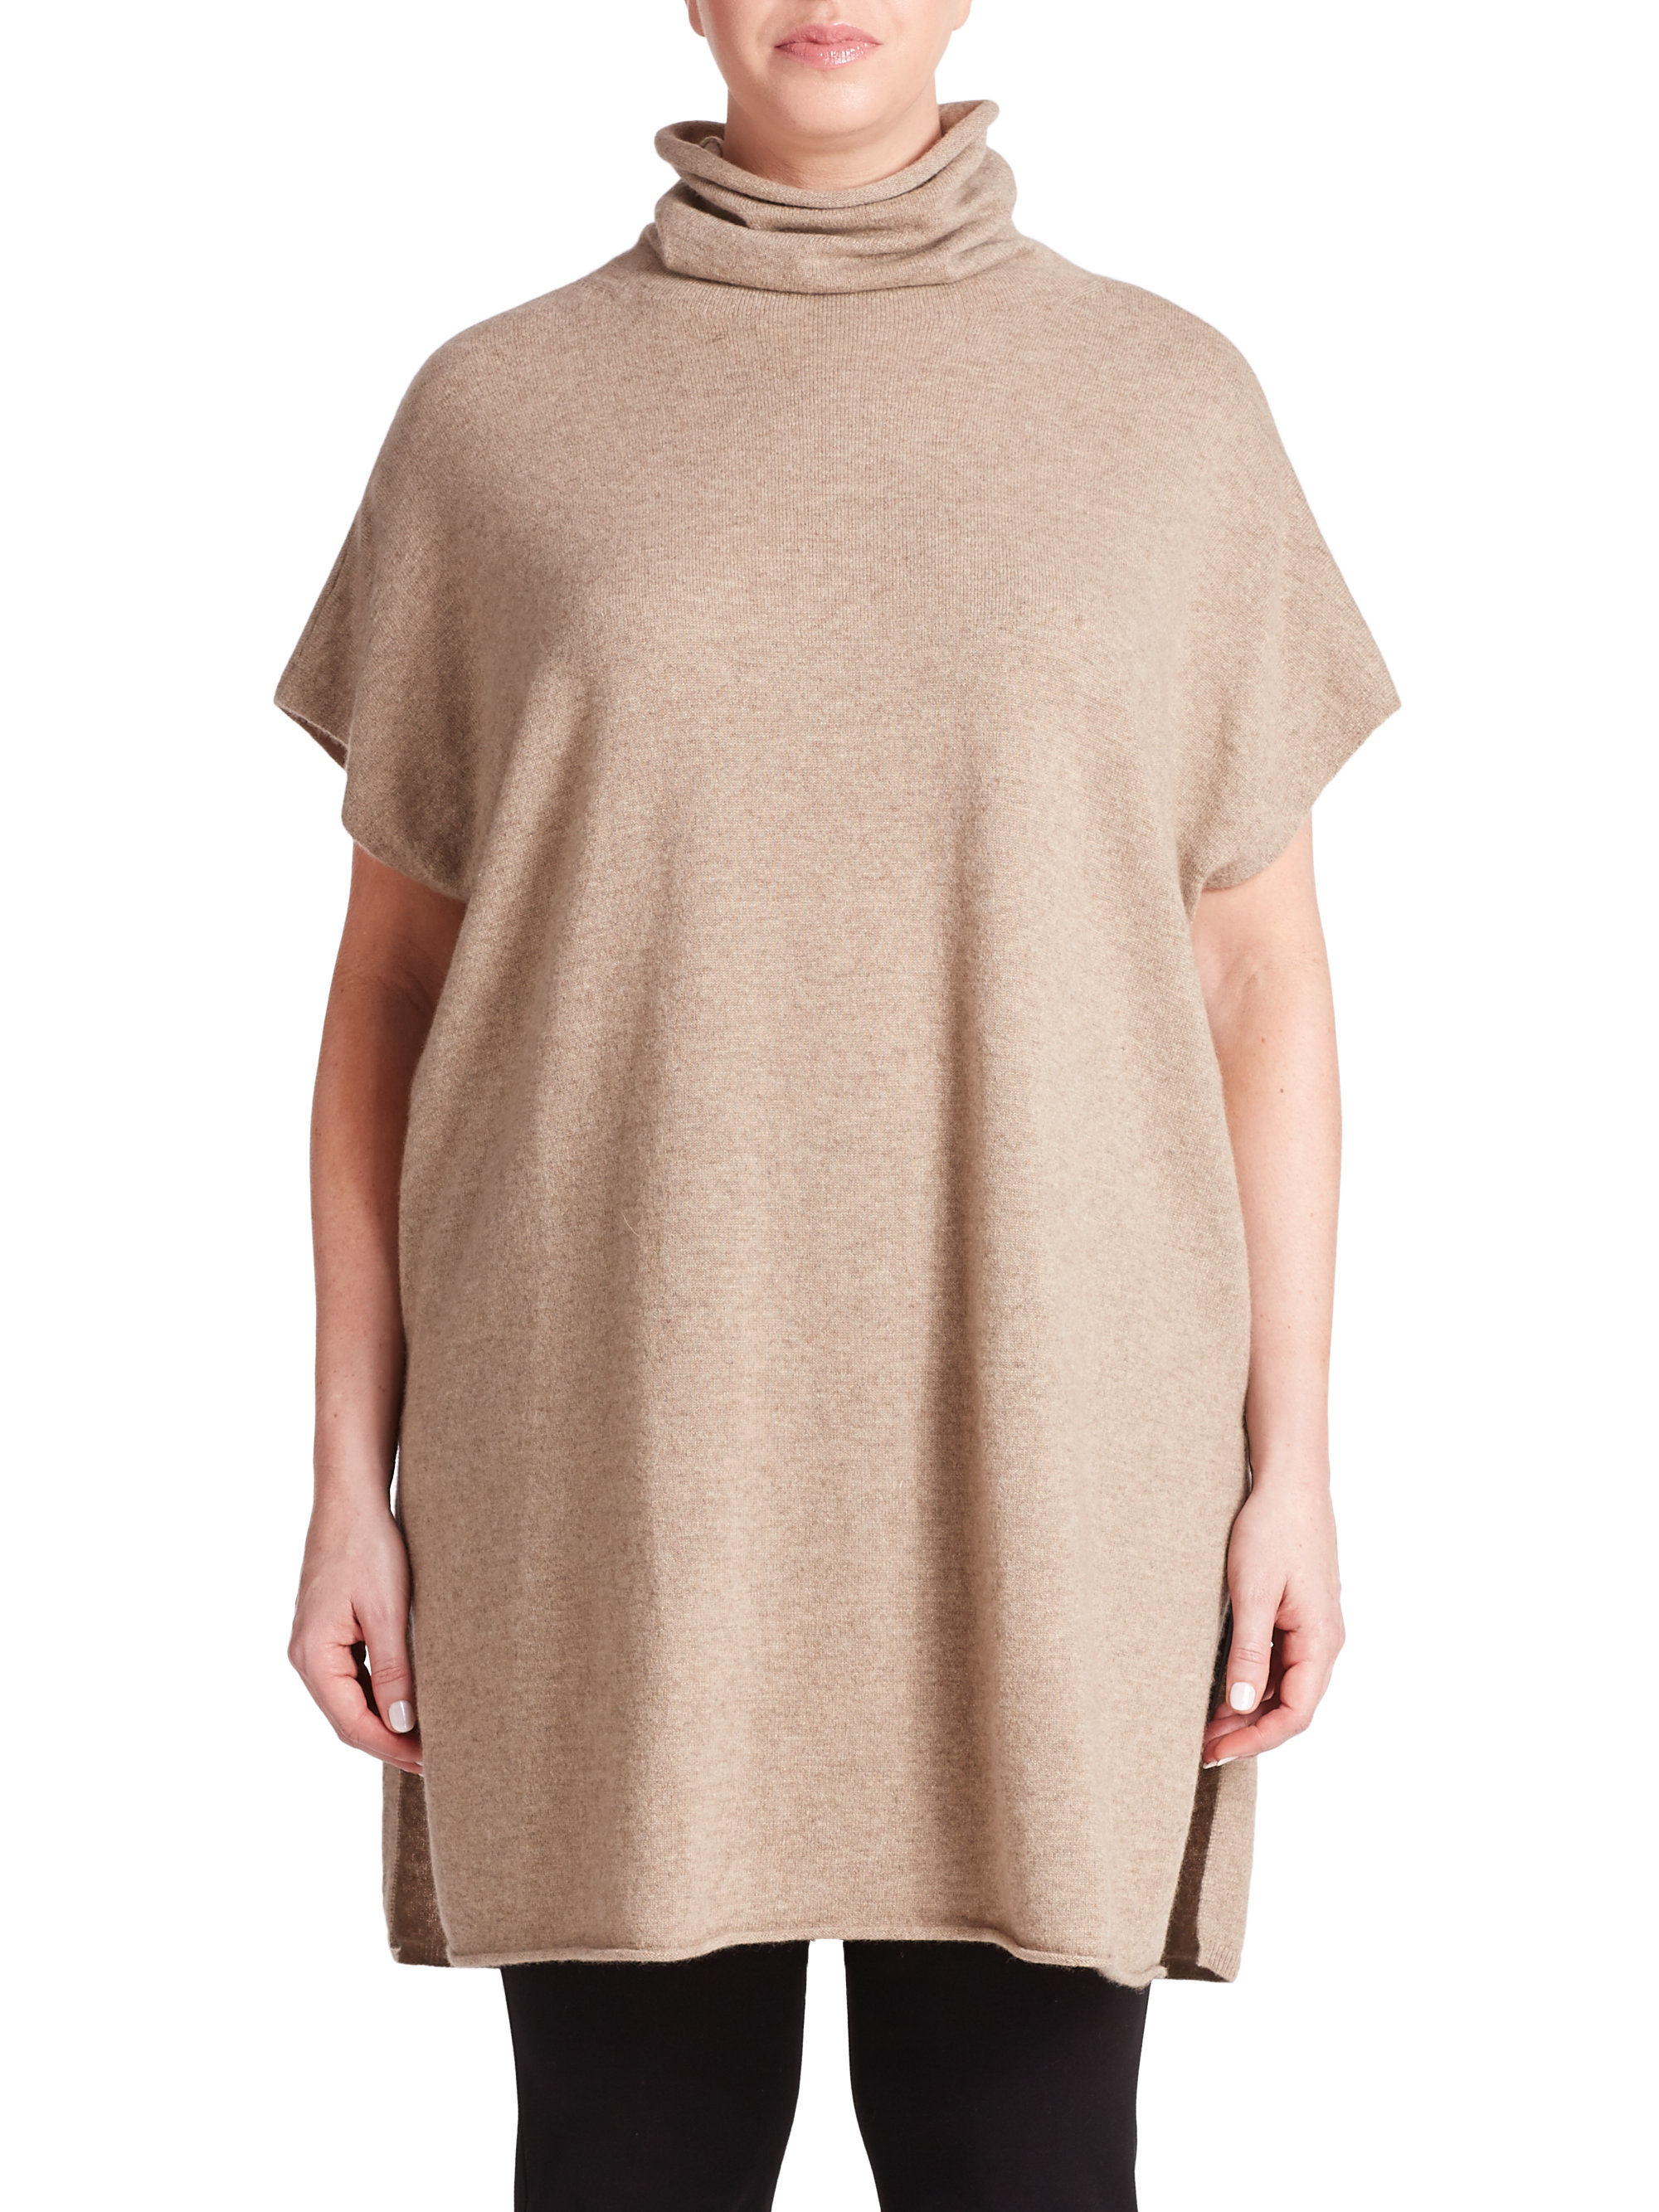 Eileen fisher Cashmere Turtleneck Tunic in Brown | Lyst